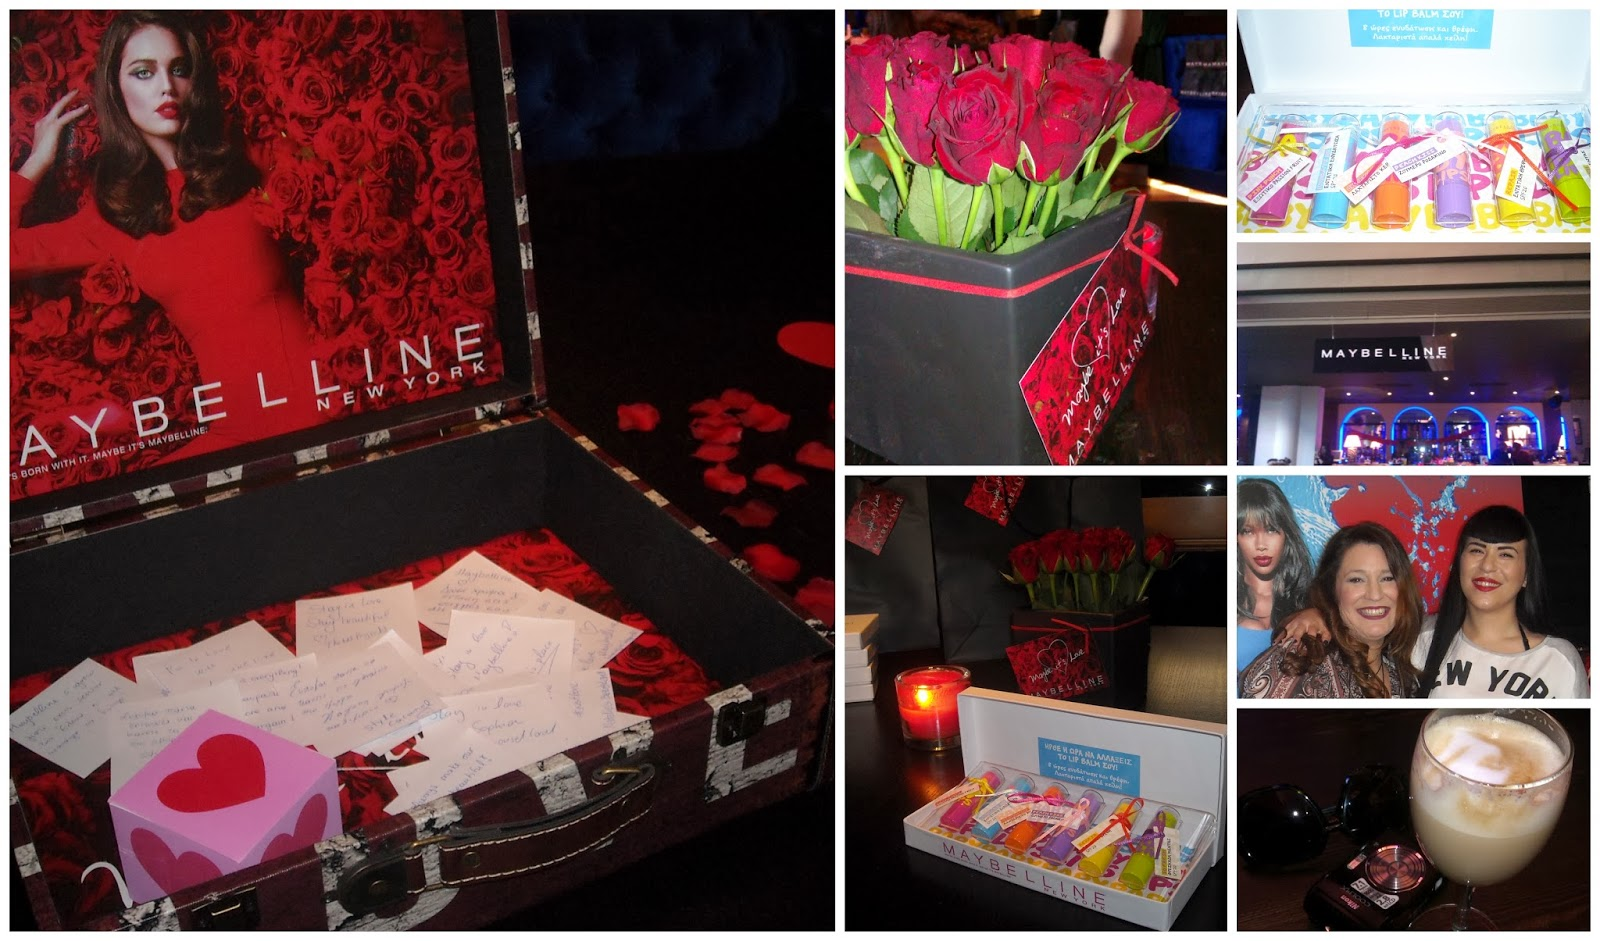 The Maybelline Event on Valentine's Day